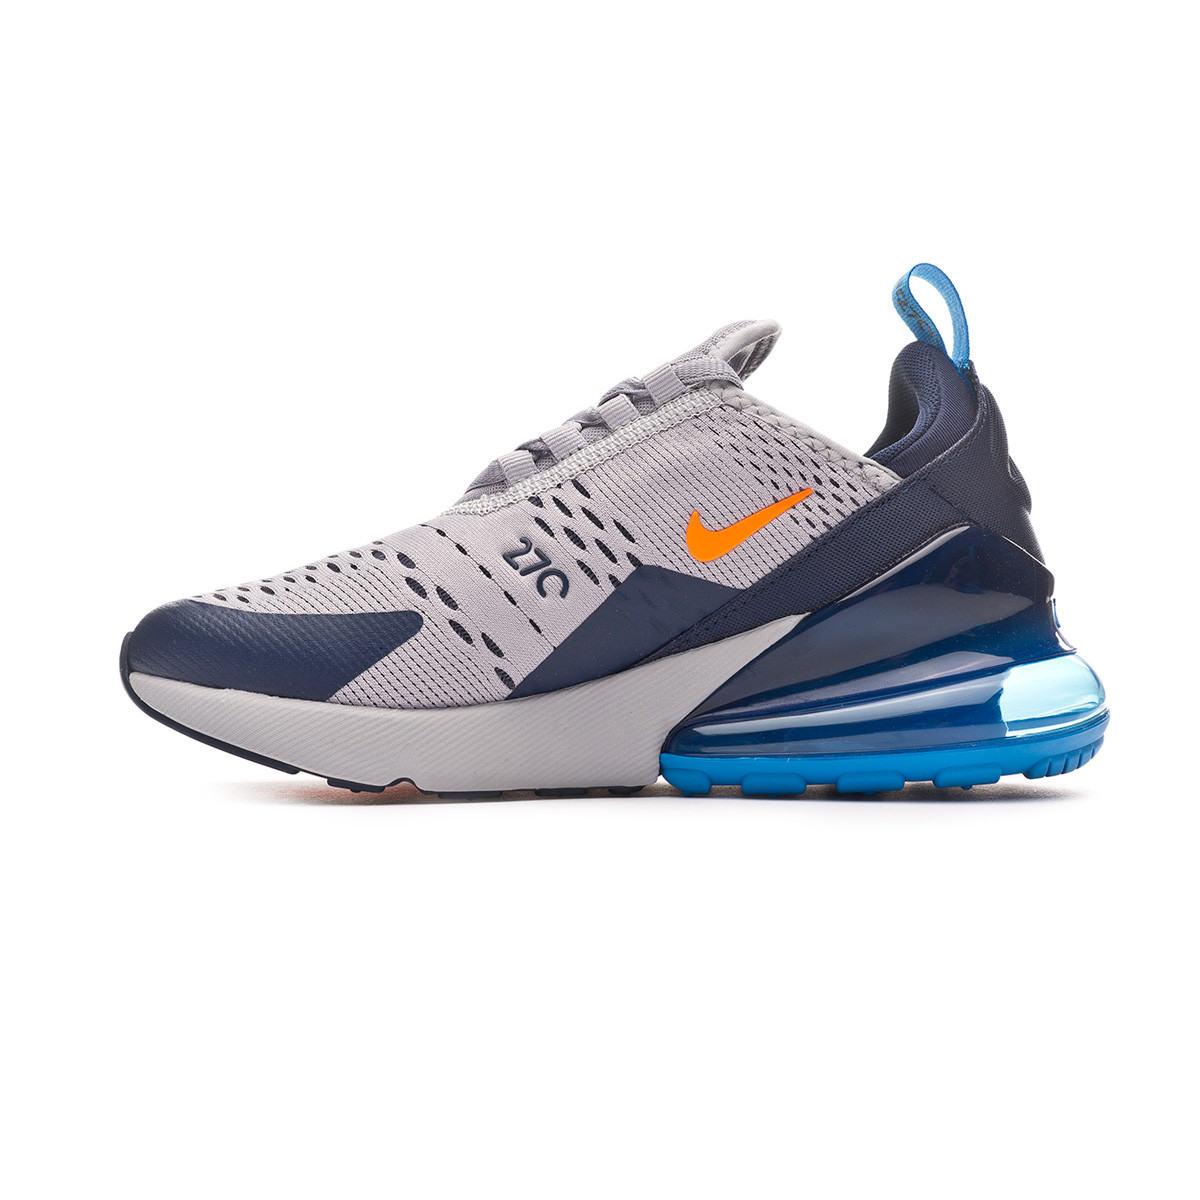 84cfa103c Trainers Nike Air Max 270 Niño Wolf grey-Total orange-Midnight navy -  Football store Fútbol Emotion